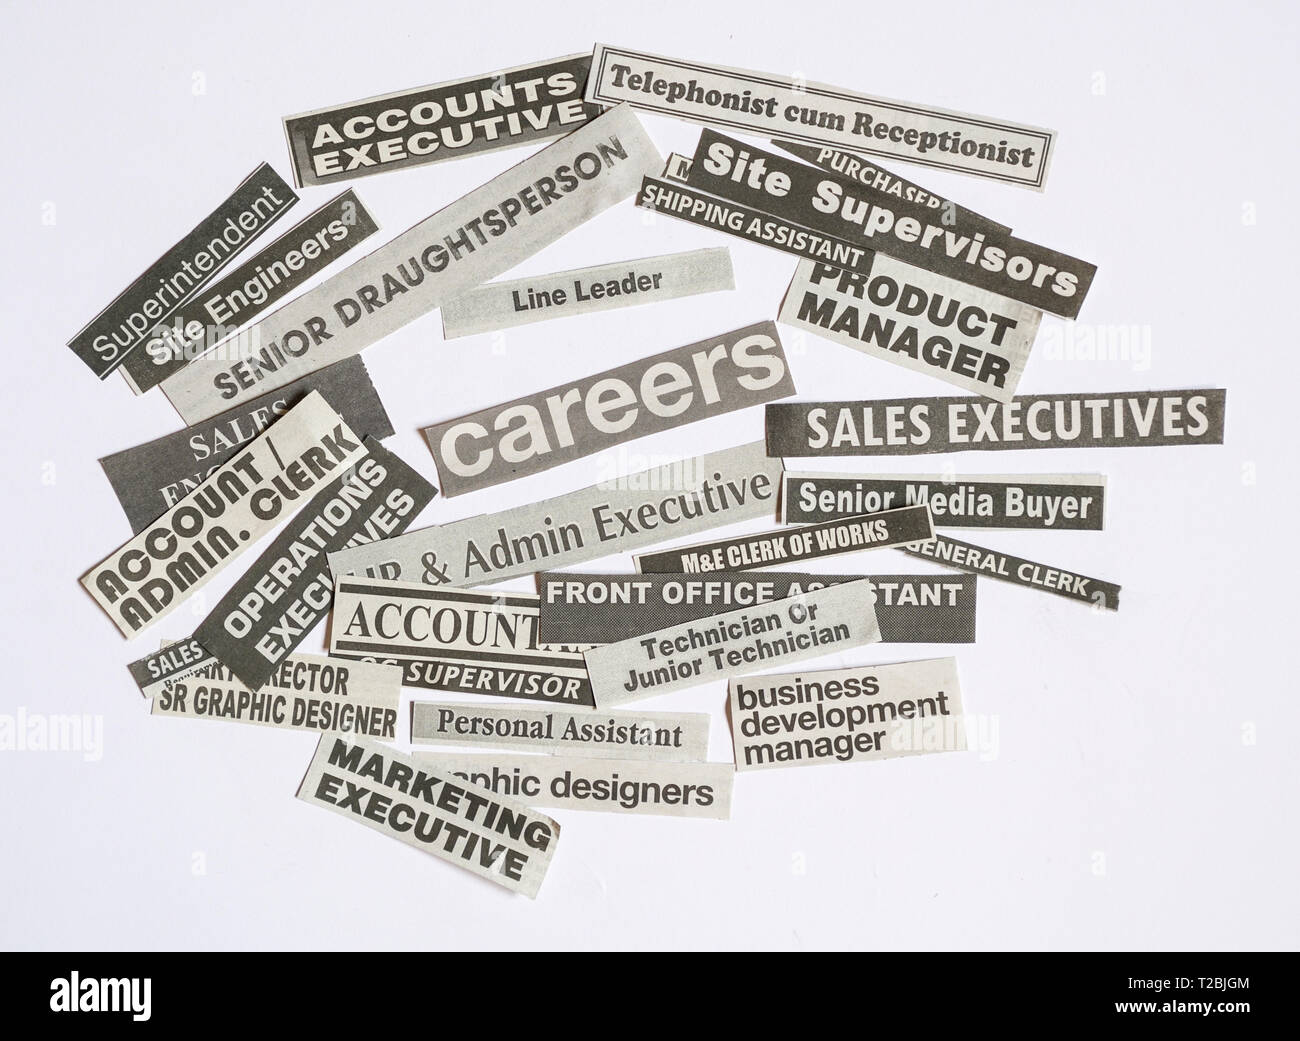 Jobs or careers concept: job titles or occupations cut off from newspaper and with Careers at the centre of the pile - Stock Image